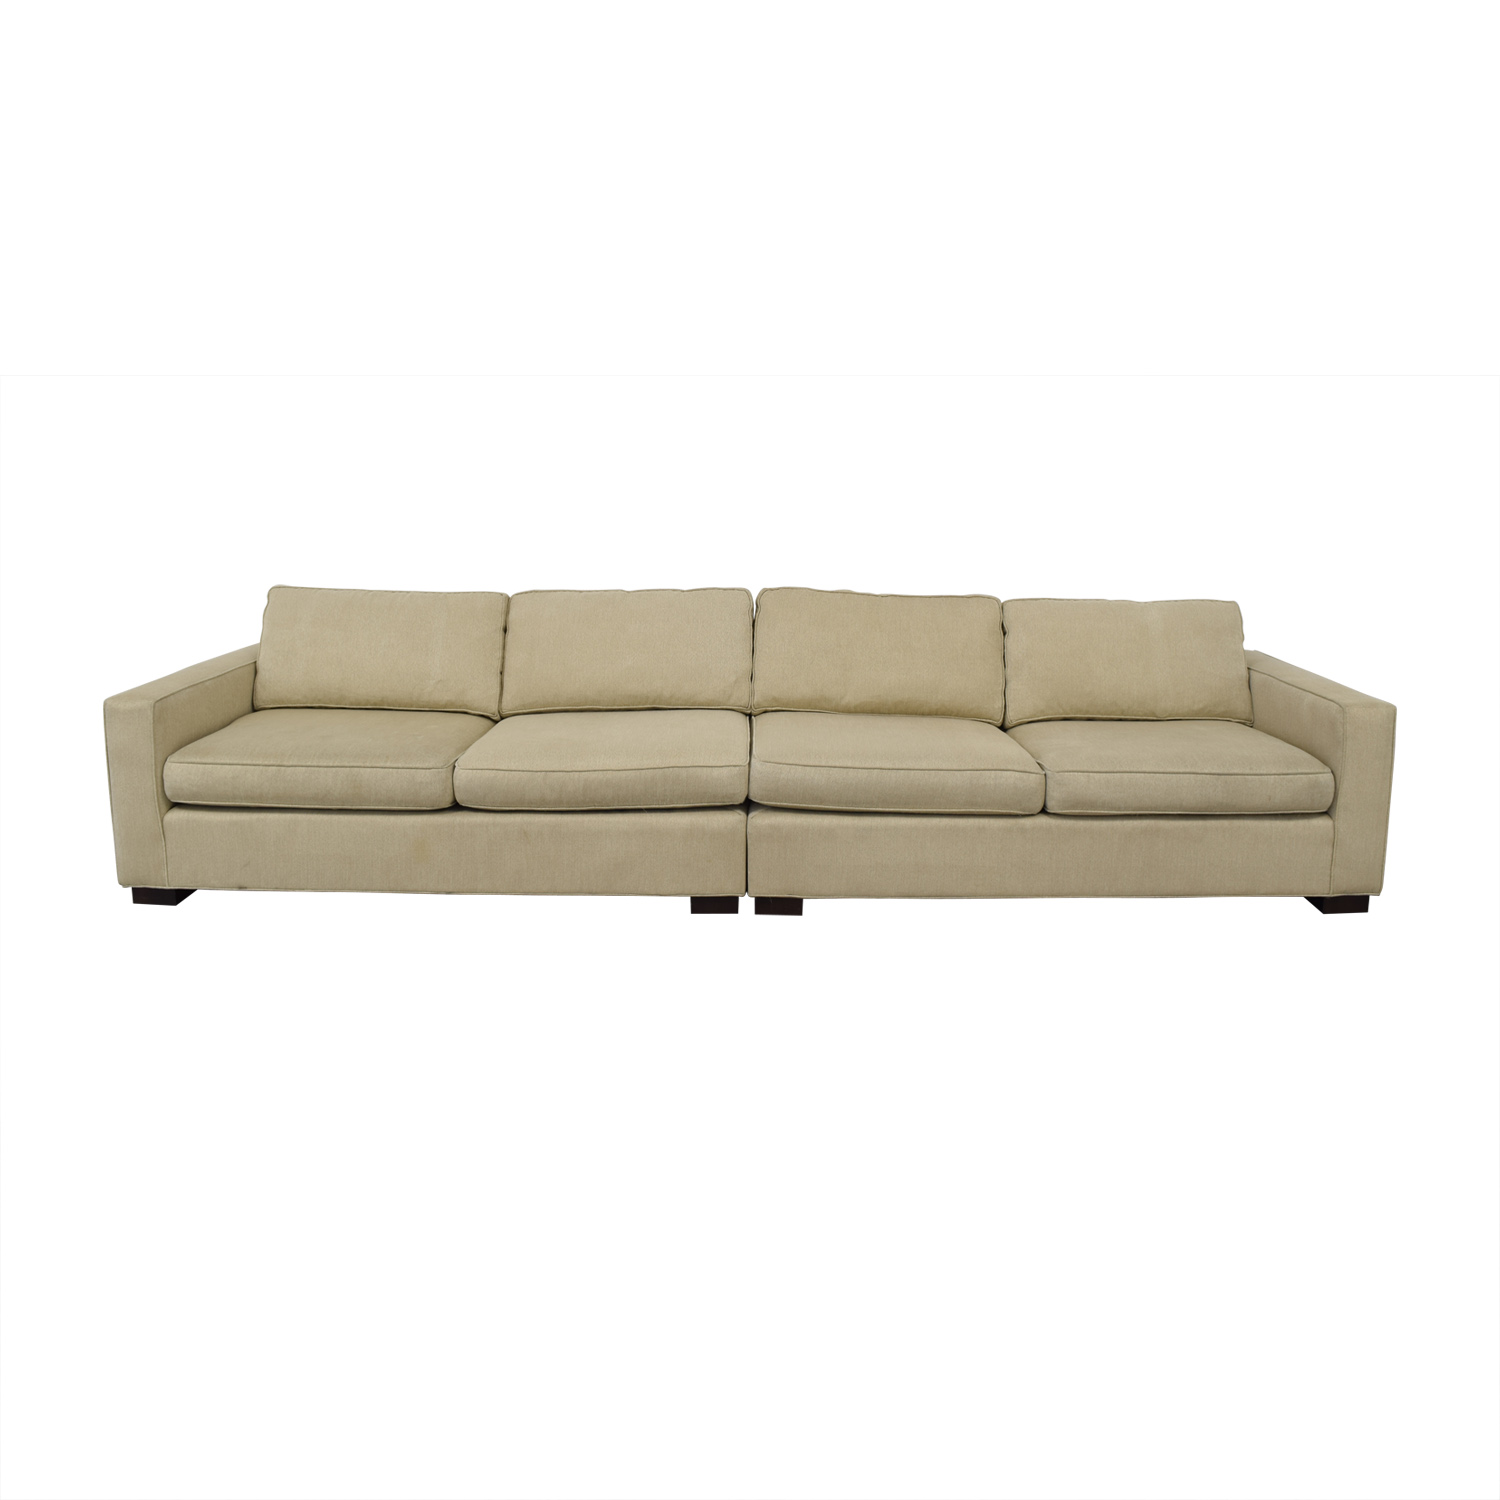 Mitchell Gold + Bob Williams Mitchell Gold + Bob Williams Carson Beige Four-Cushion Sofa coupon